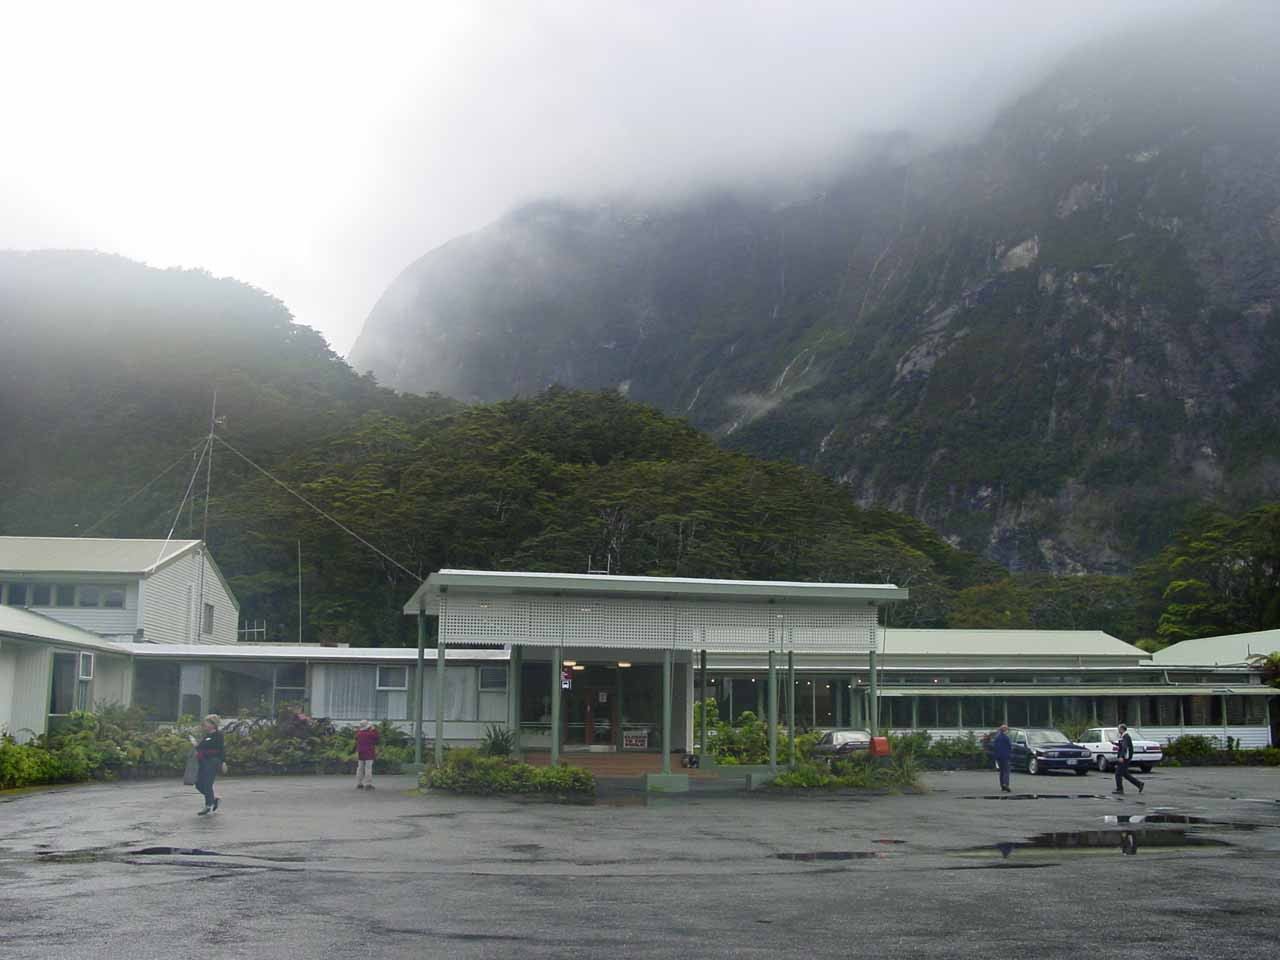 Looking back at the Mitre Peak Lodge